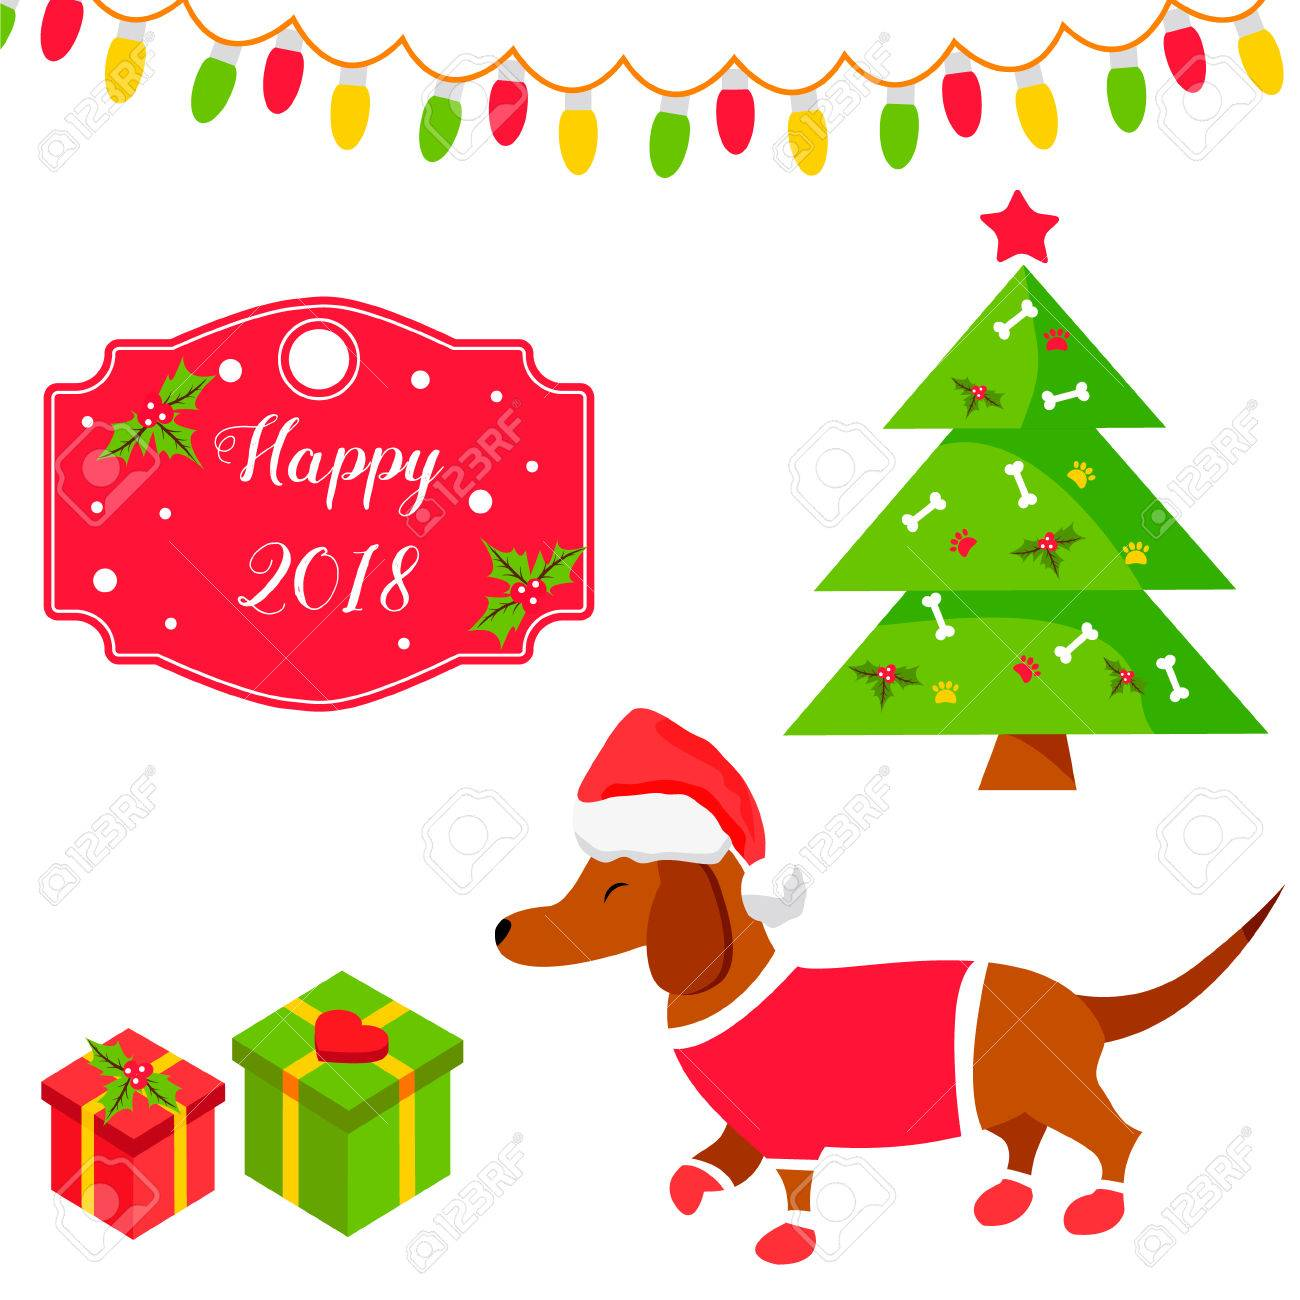 holiday dachshund dog and christmas scene christmas and new year background stock vector 87709348